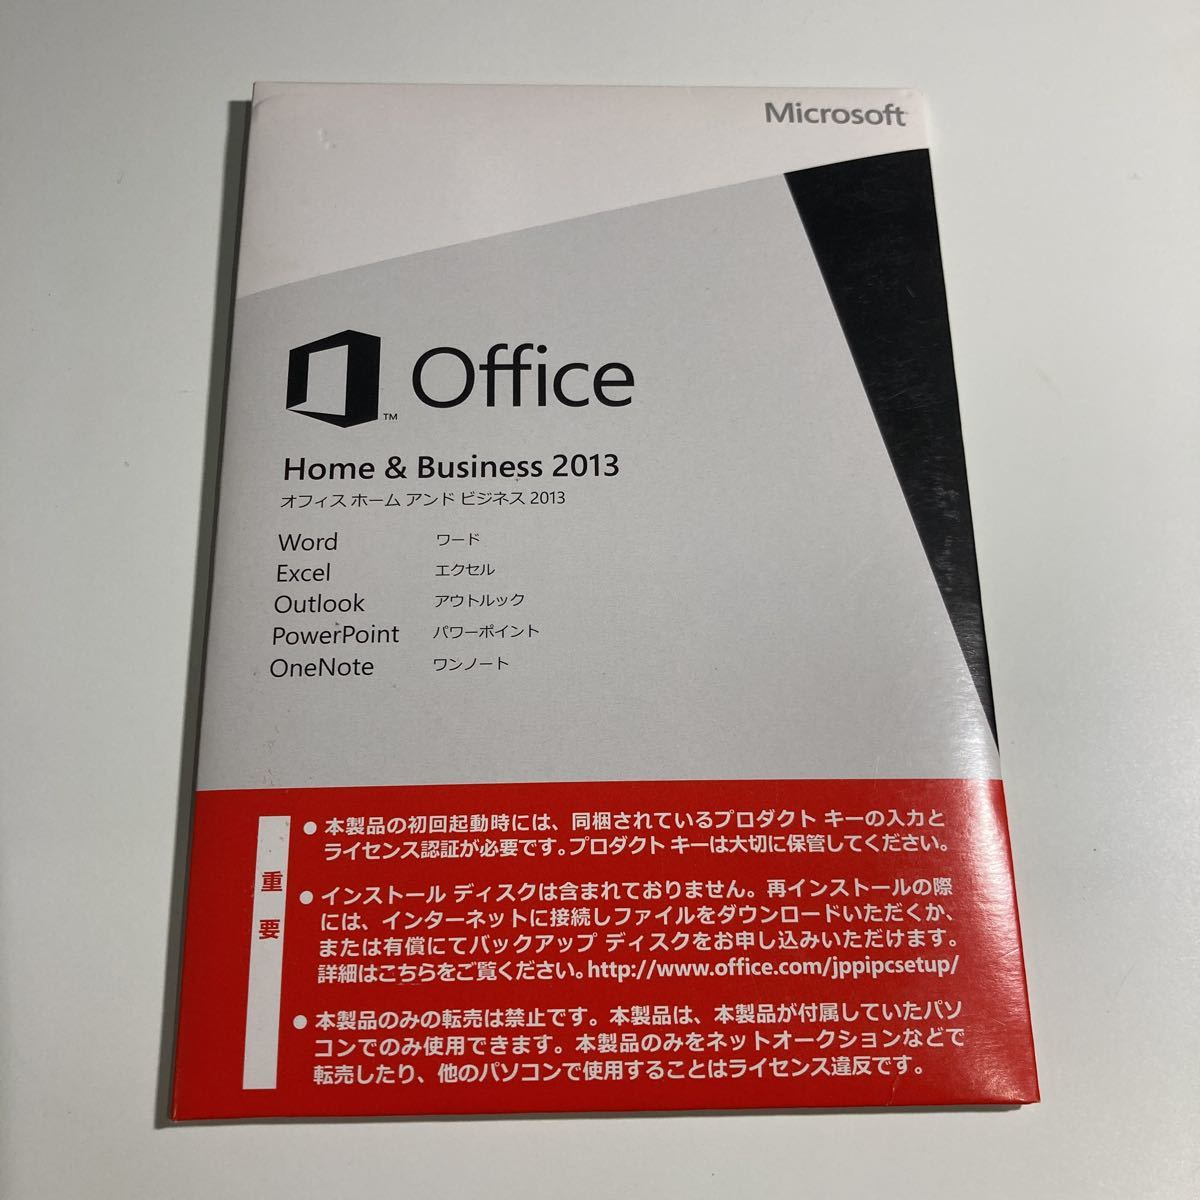 Microsoft Office Home&Business 2013 マイクロソフトオフィス プロダクトキー